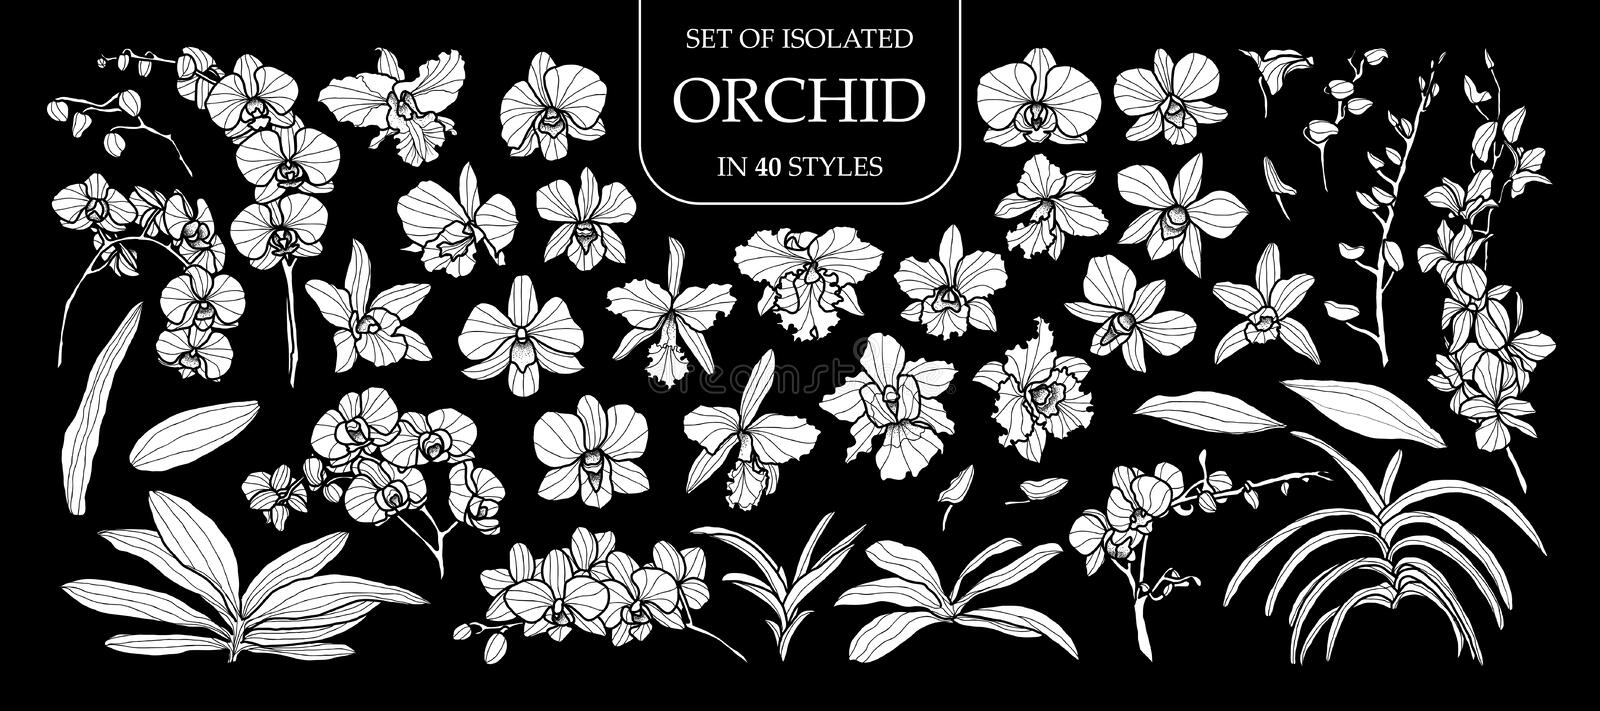 Set of isolated white silhouette orchid in 40 styles .Cute hand drawn flower vector illustration in white plane and no outline. stock illustration